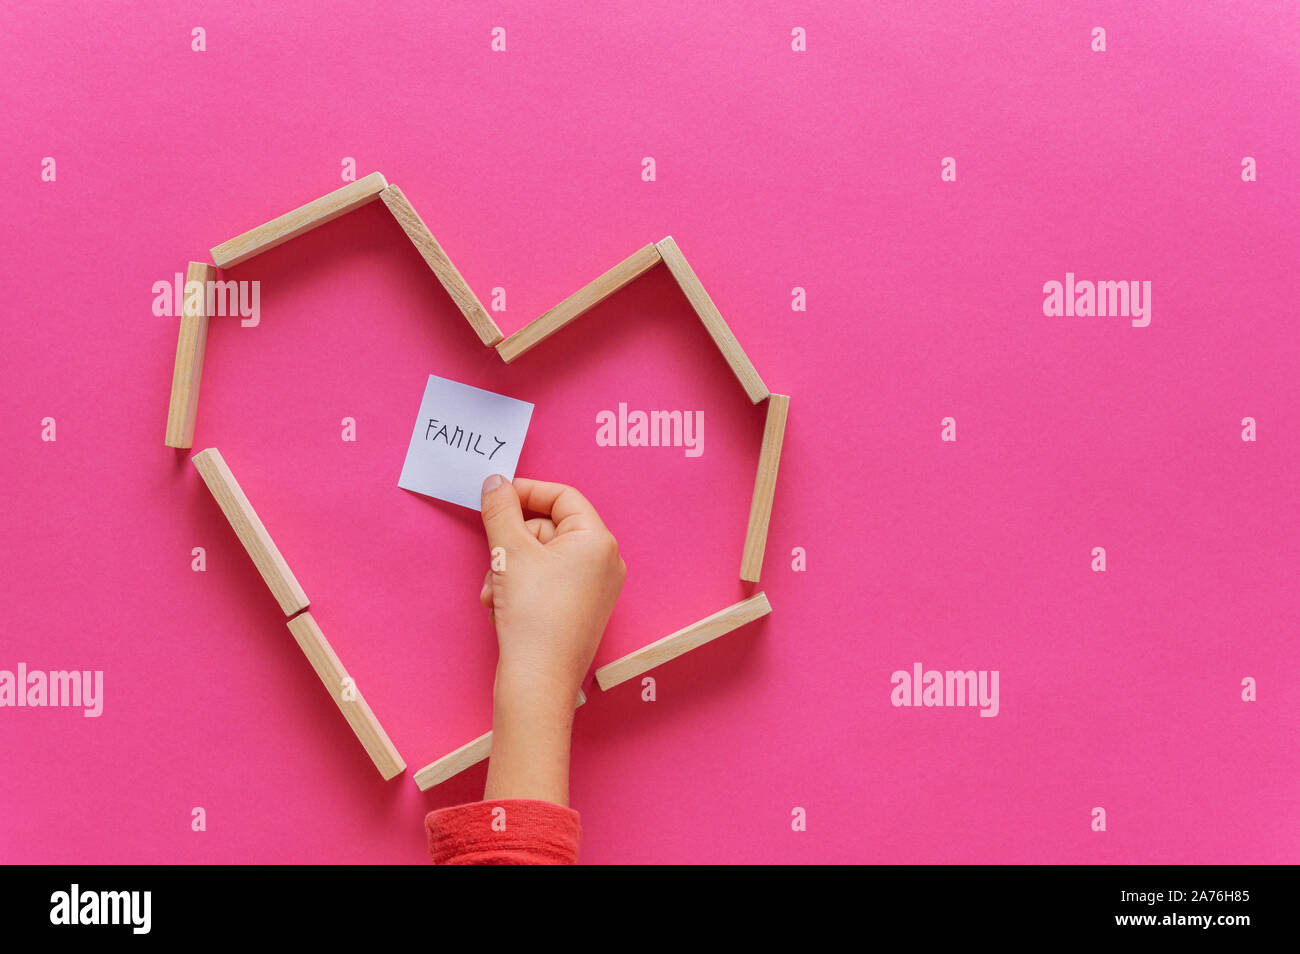 Heart shape made of wooden pegs with child hand placing post it paper with Family written on it inside the heart. Over pink background. Stock Photo